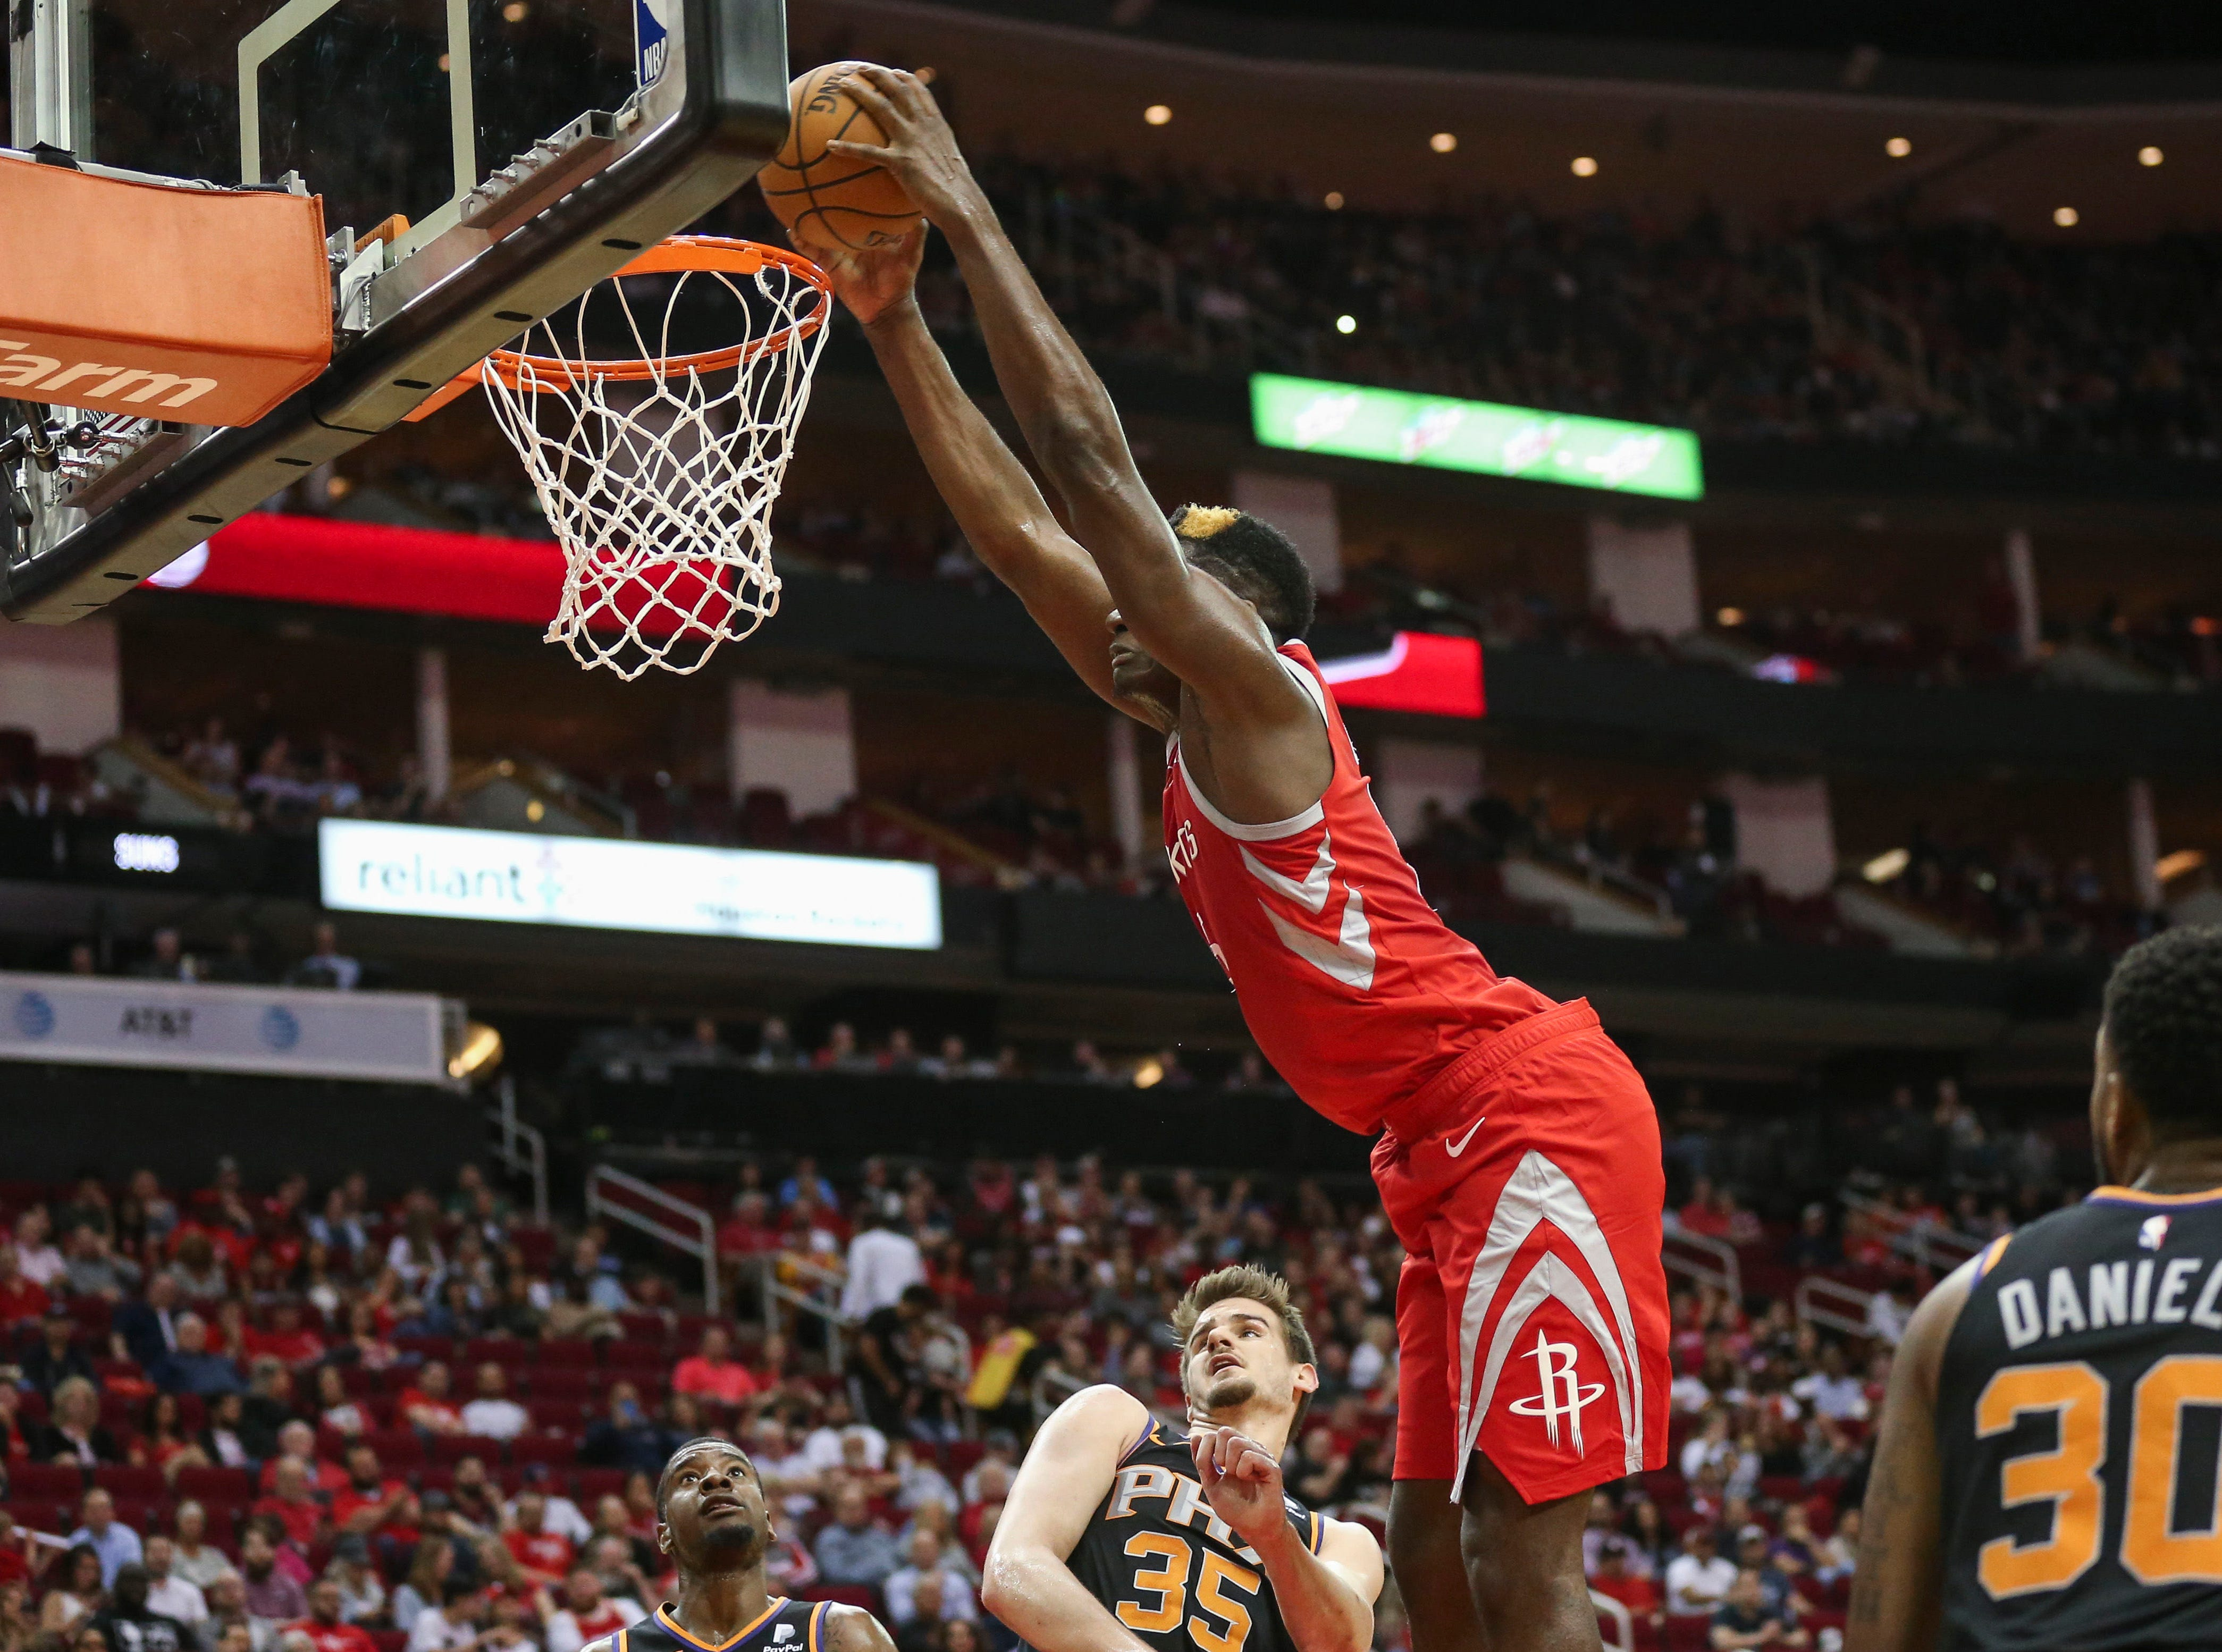 Apr 7, 2019; Houston, TX, USA; Houston Rockets center Clint Capela (15) dunks the ball during the second quarter as Phoenix Suns forward Dragan Bender (35) defends at Toyota Center. Mandatory Credit: Troy Taormina-USA TODAY Sports